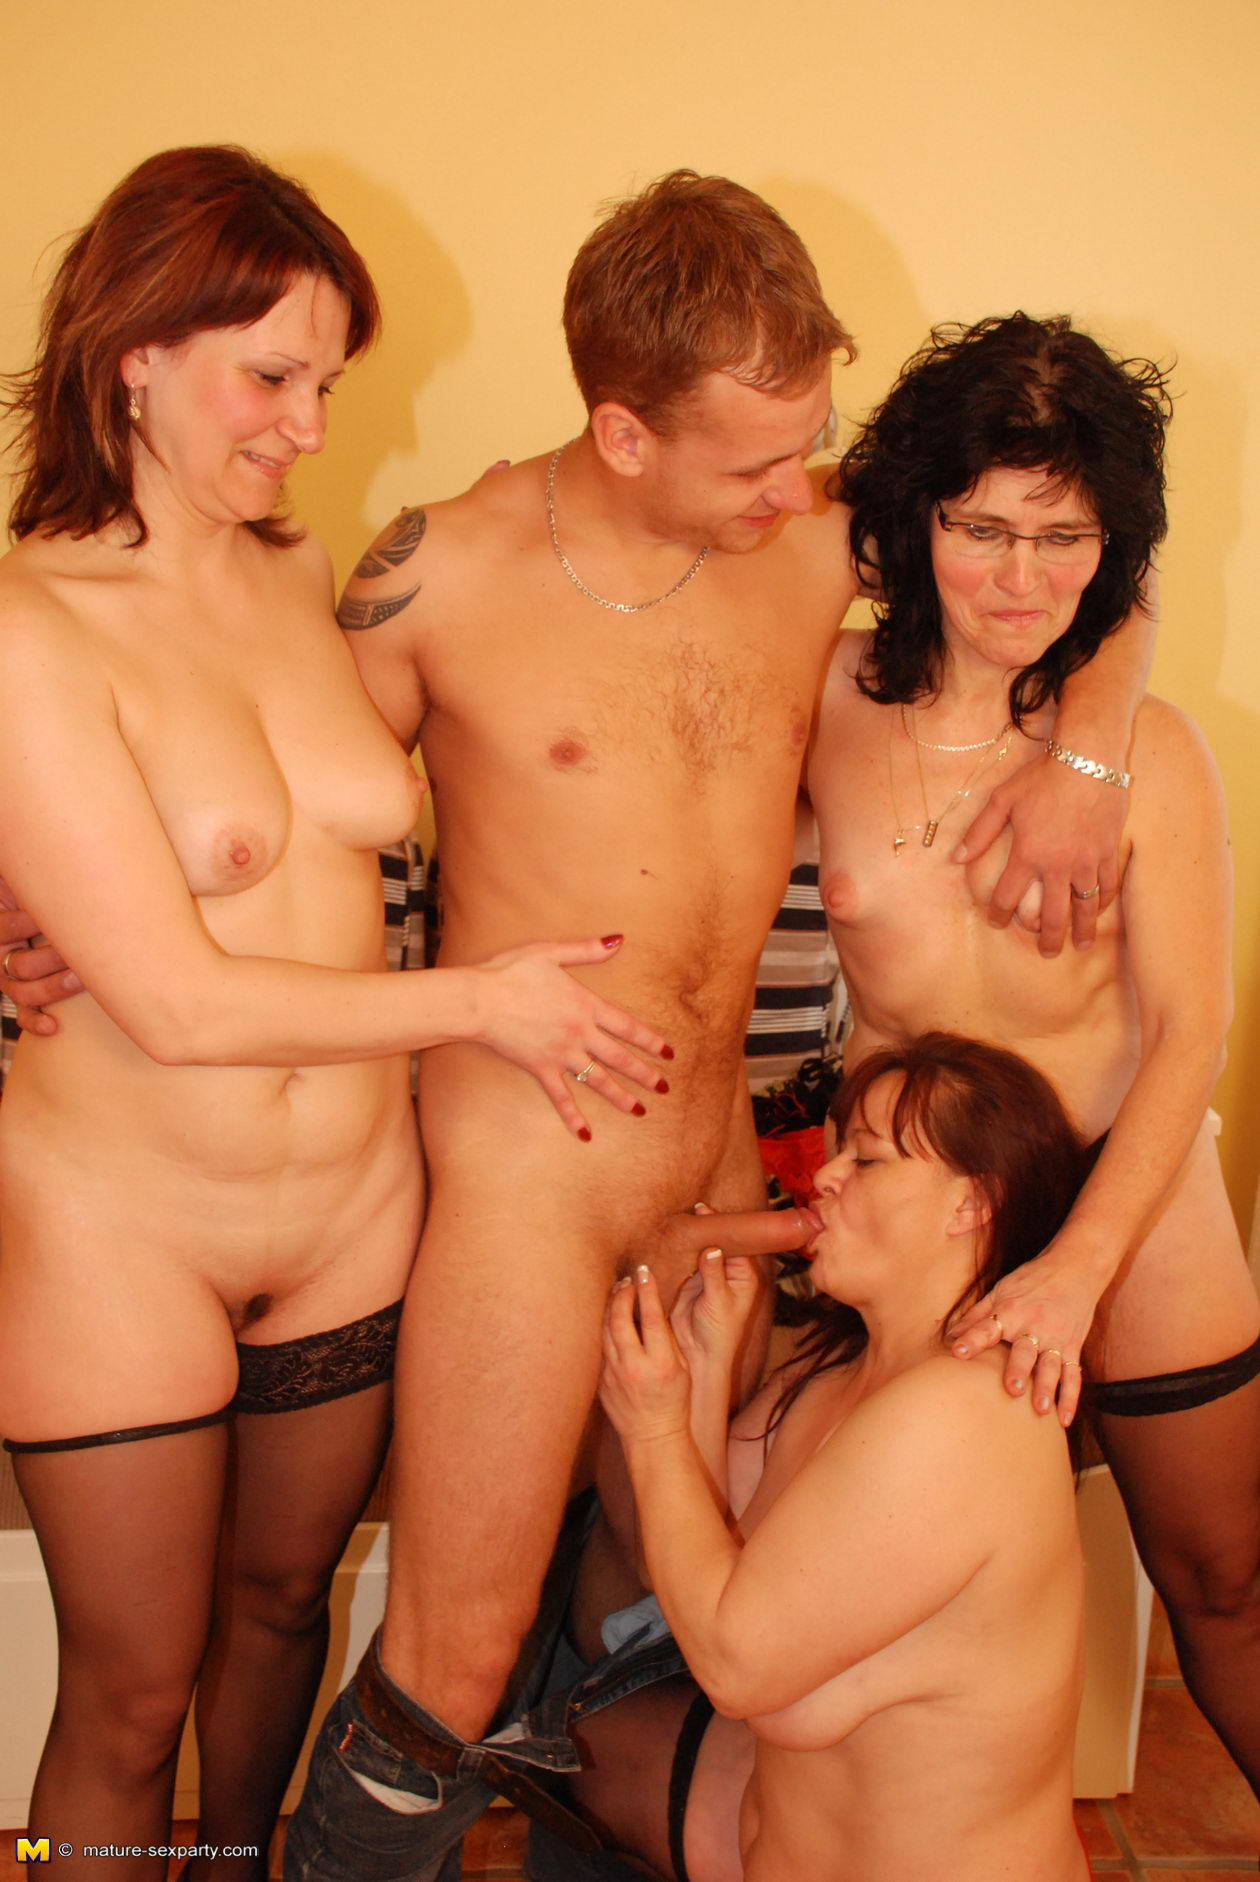 Mother young boy orgy think, that